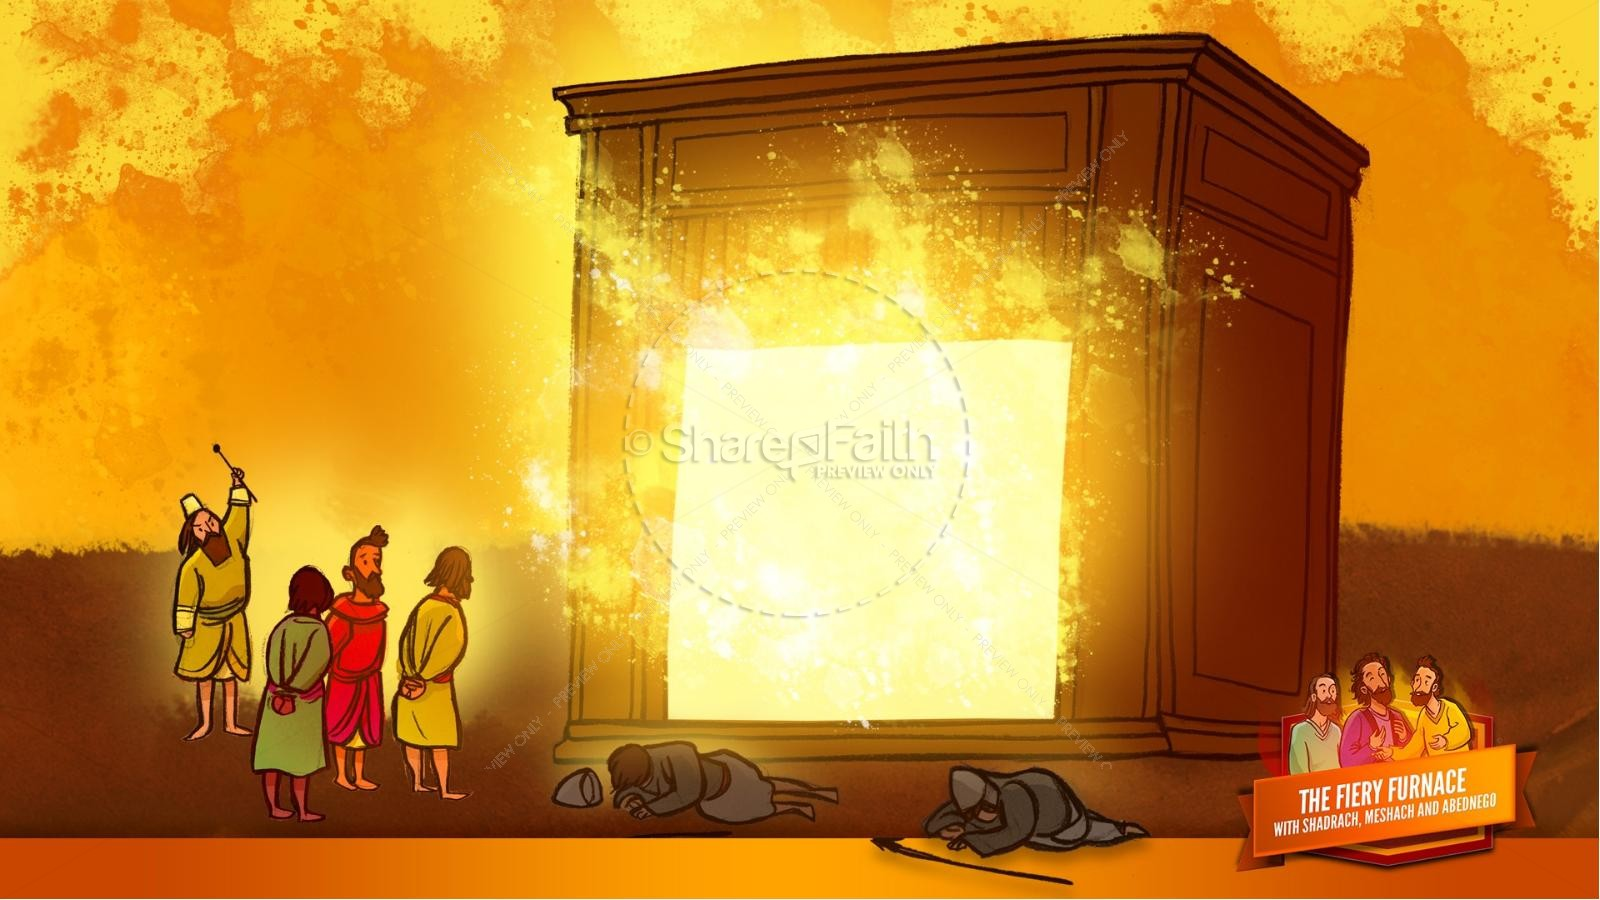 The Fiery Furnace with Shadrach, Meshach and Abednego Kids Bible Story | slide 47